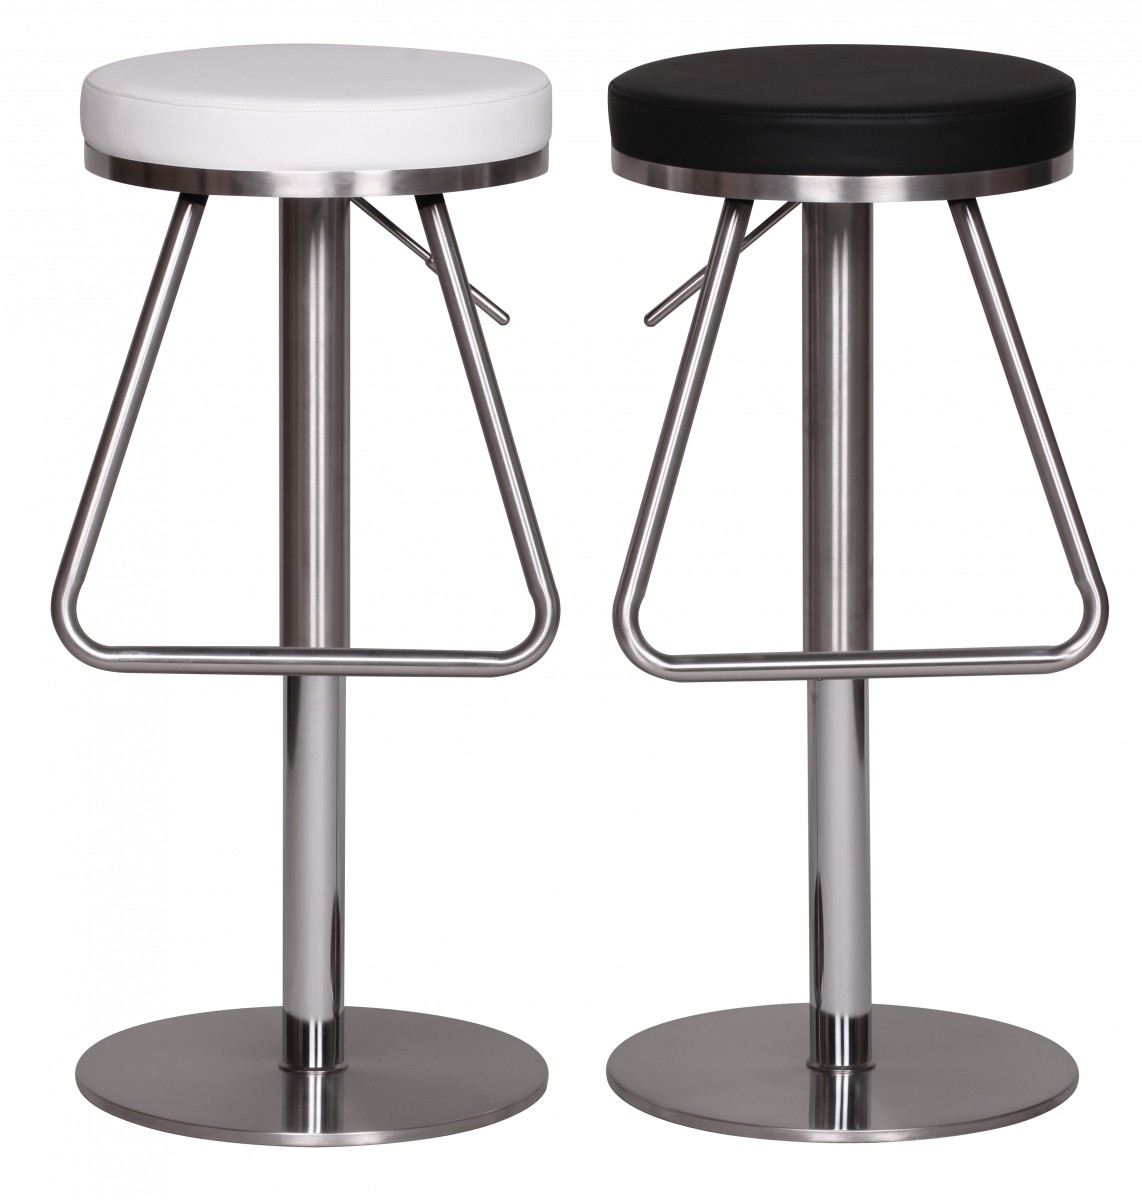 Stainless Steel Stools Kitchen: WOHNLING BAR STOOL STAINLESS STEEL BRUSHED FAUX LEATHER